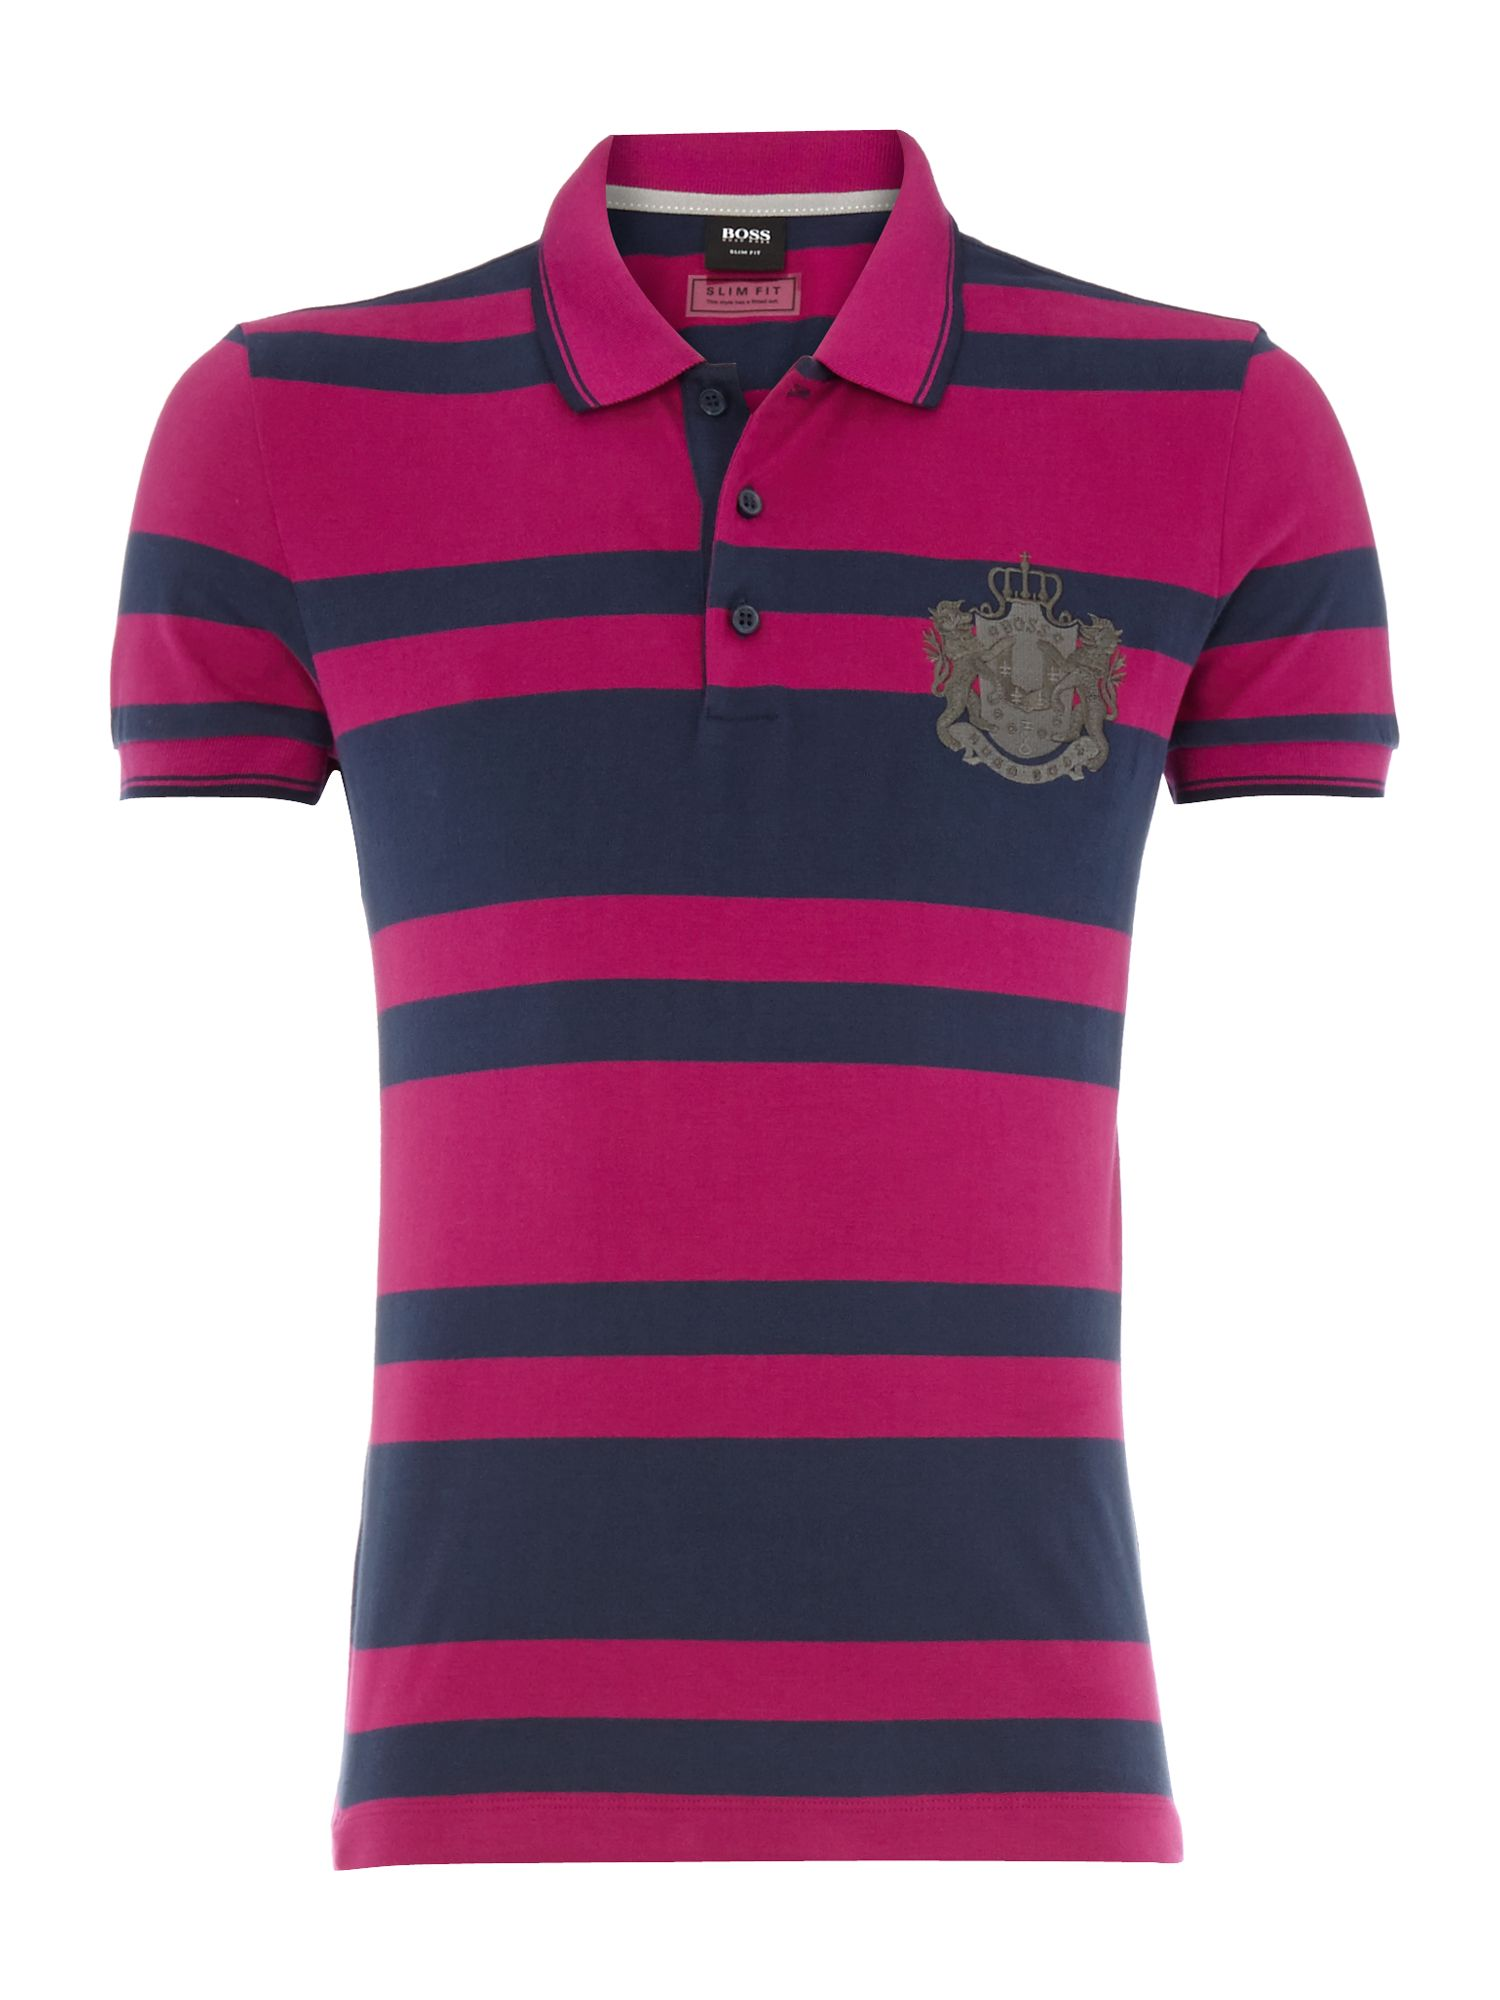 Stripe emblem polo